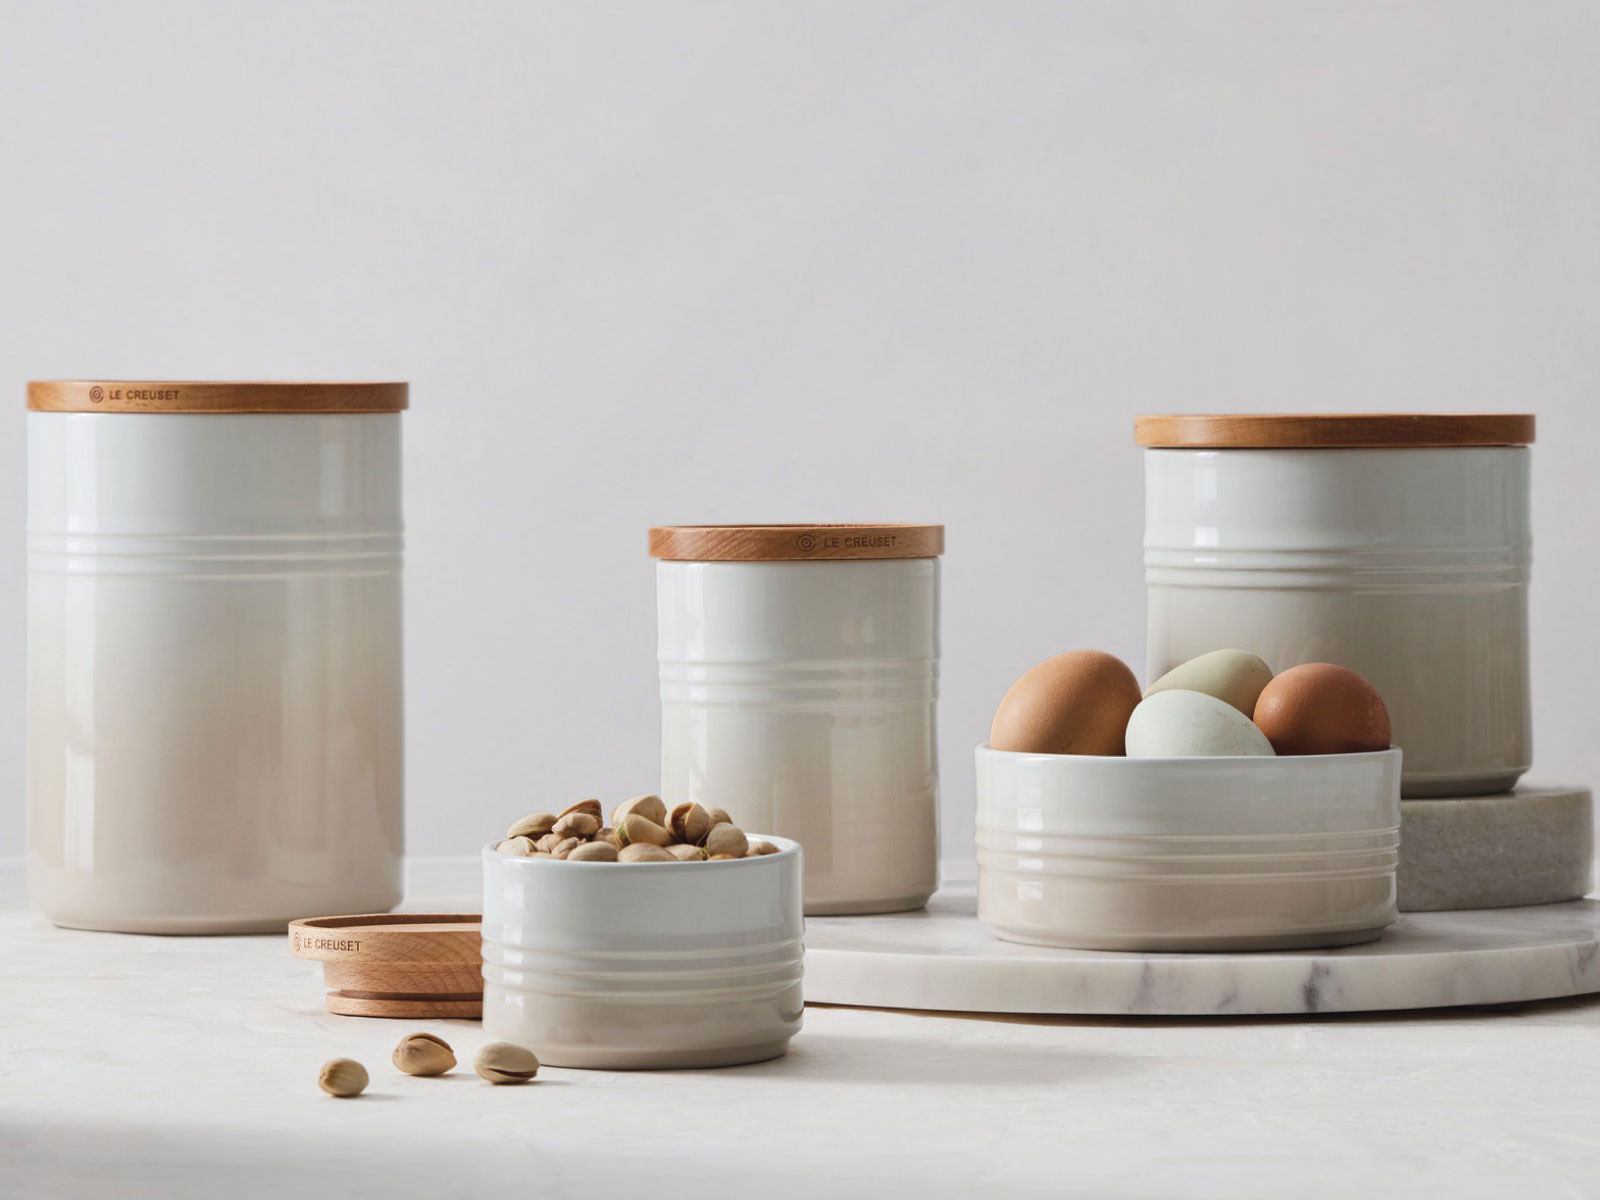 Le Creuset canisters